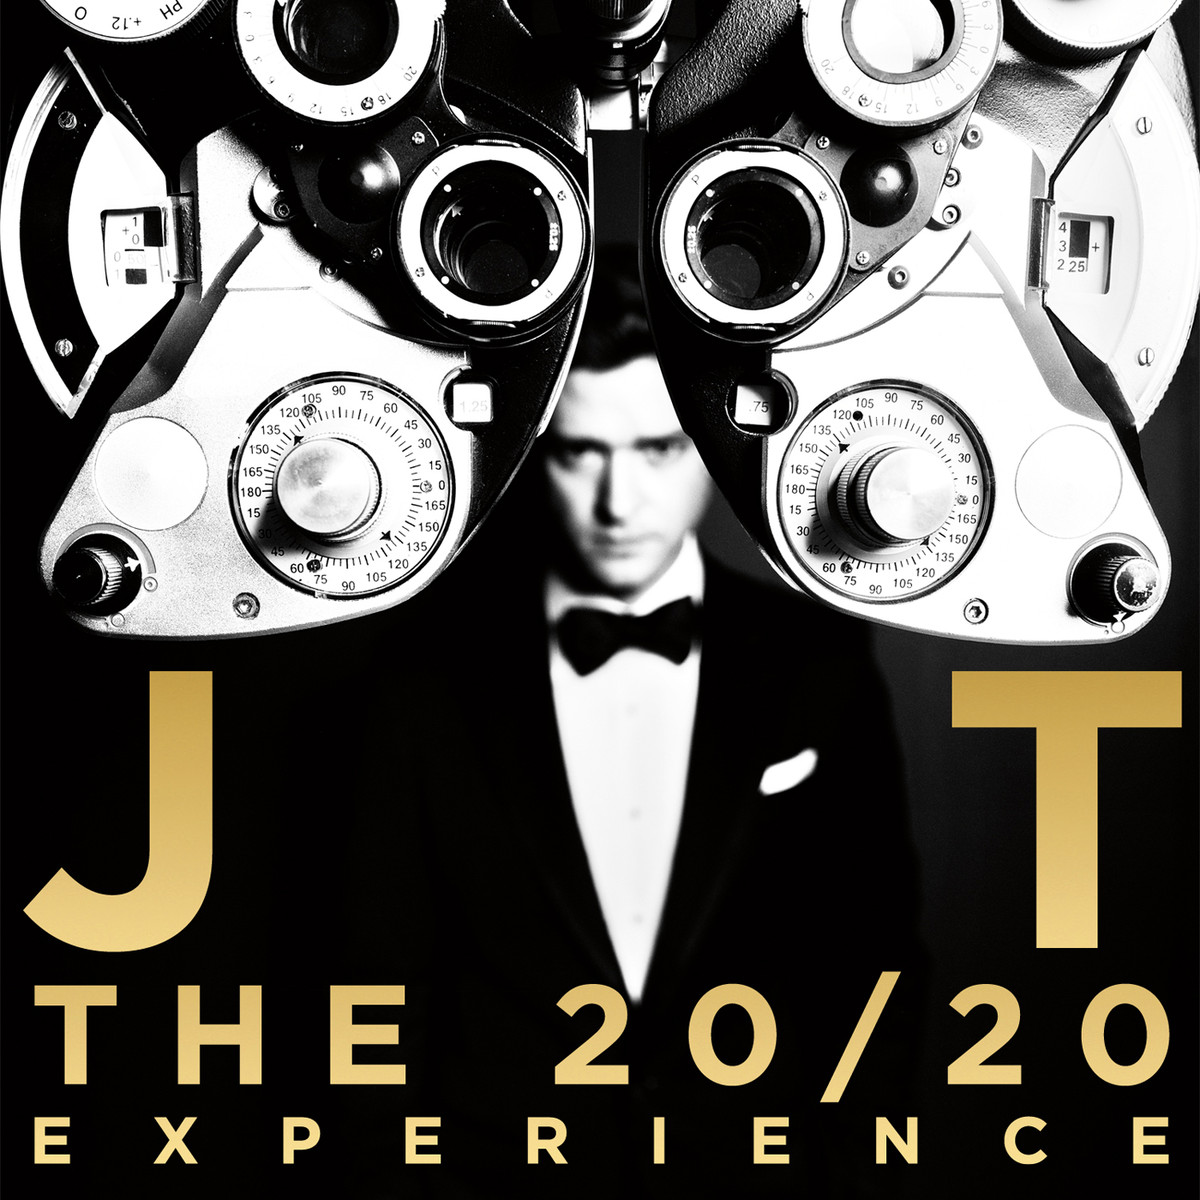 http://www.festivalrykten.se/wp-content/uploads/2013/03/Justin-Timberlake-The-20_20-Experience-Deluxe-Version-2013-1200x1200.png